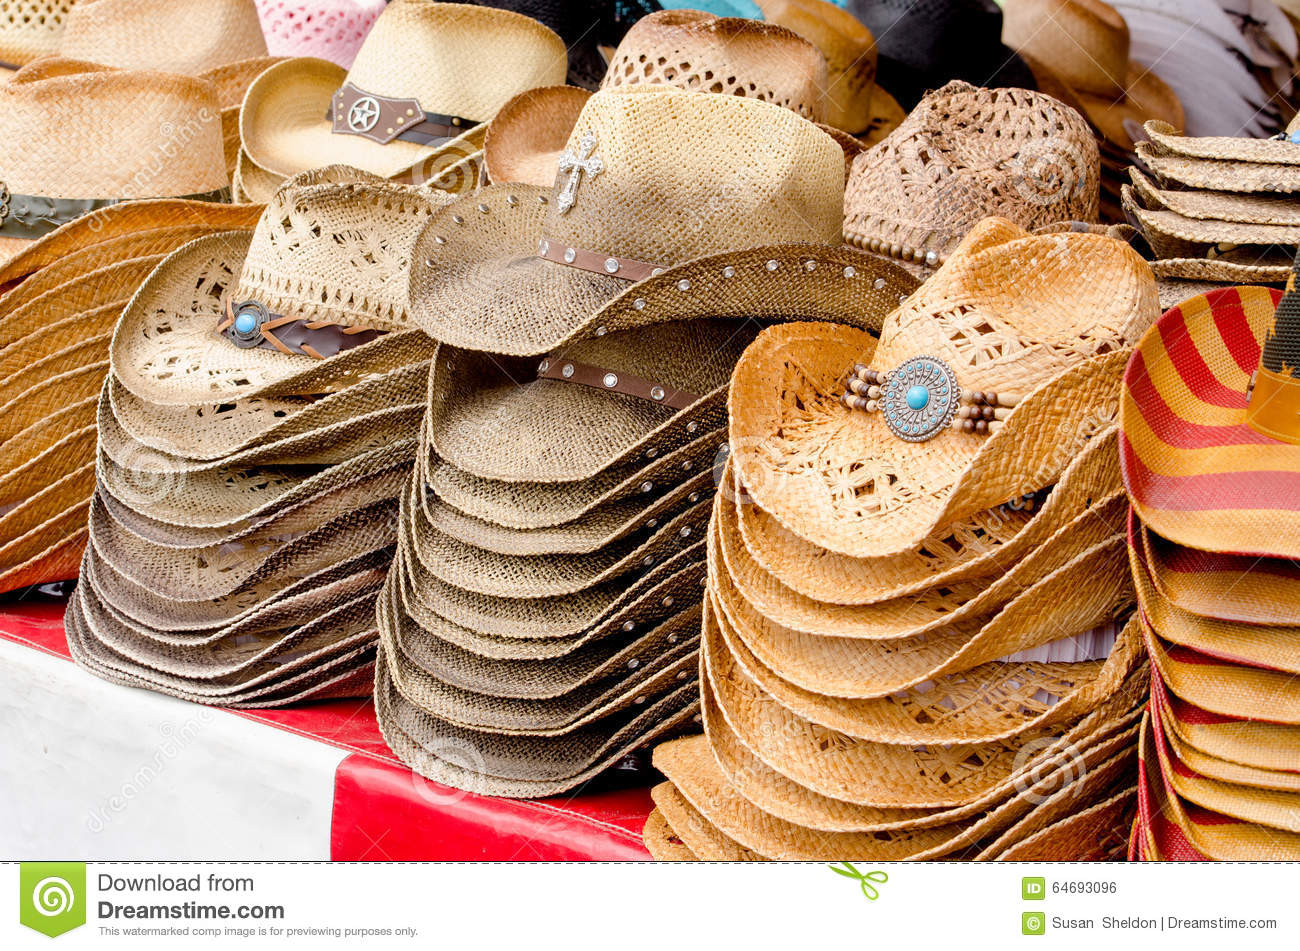 d7076728bc4a5e Straw cowboy hats stock photo. Image of textures, shopping - 64693096